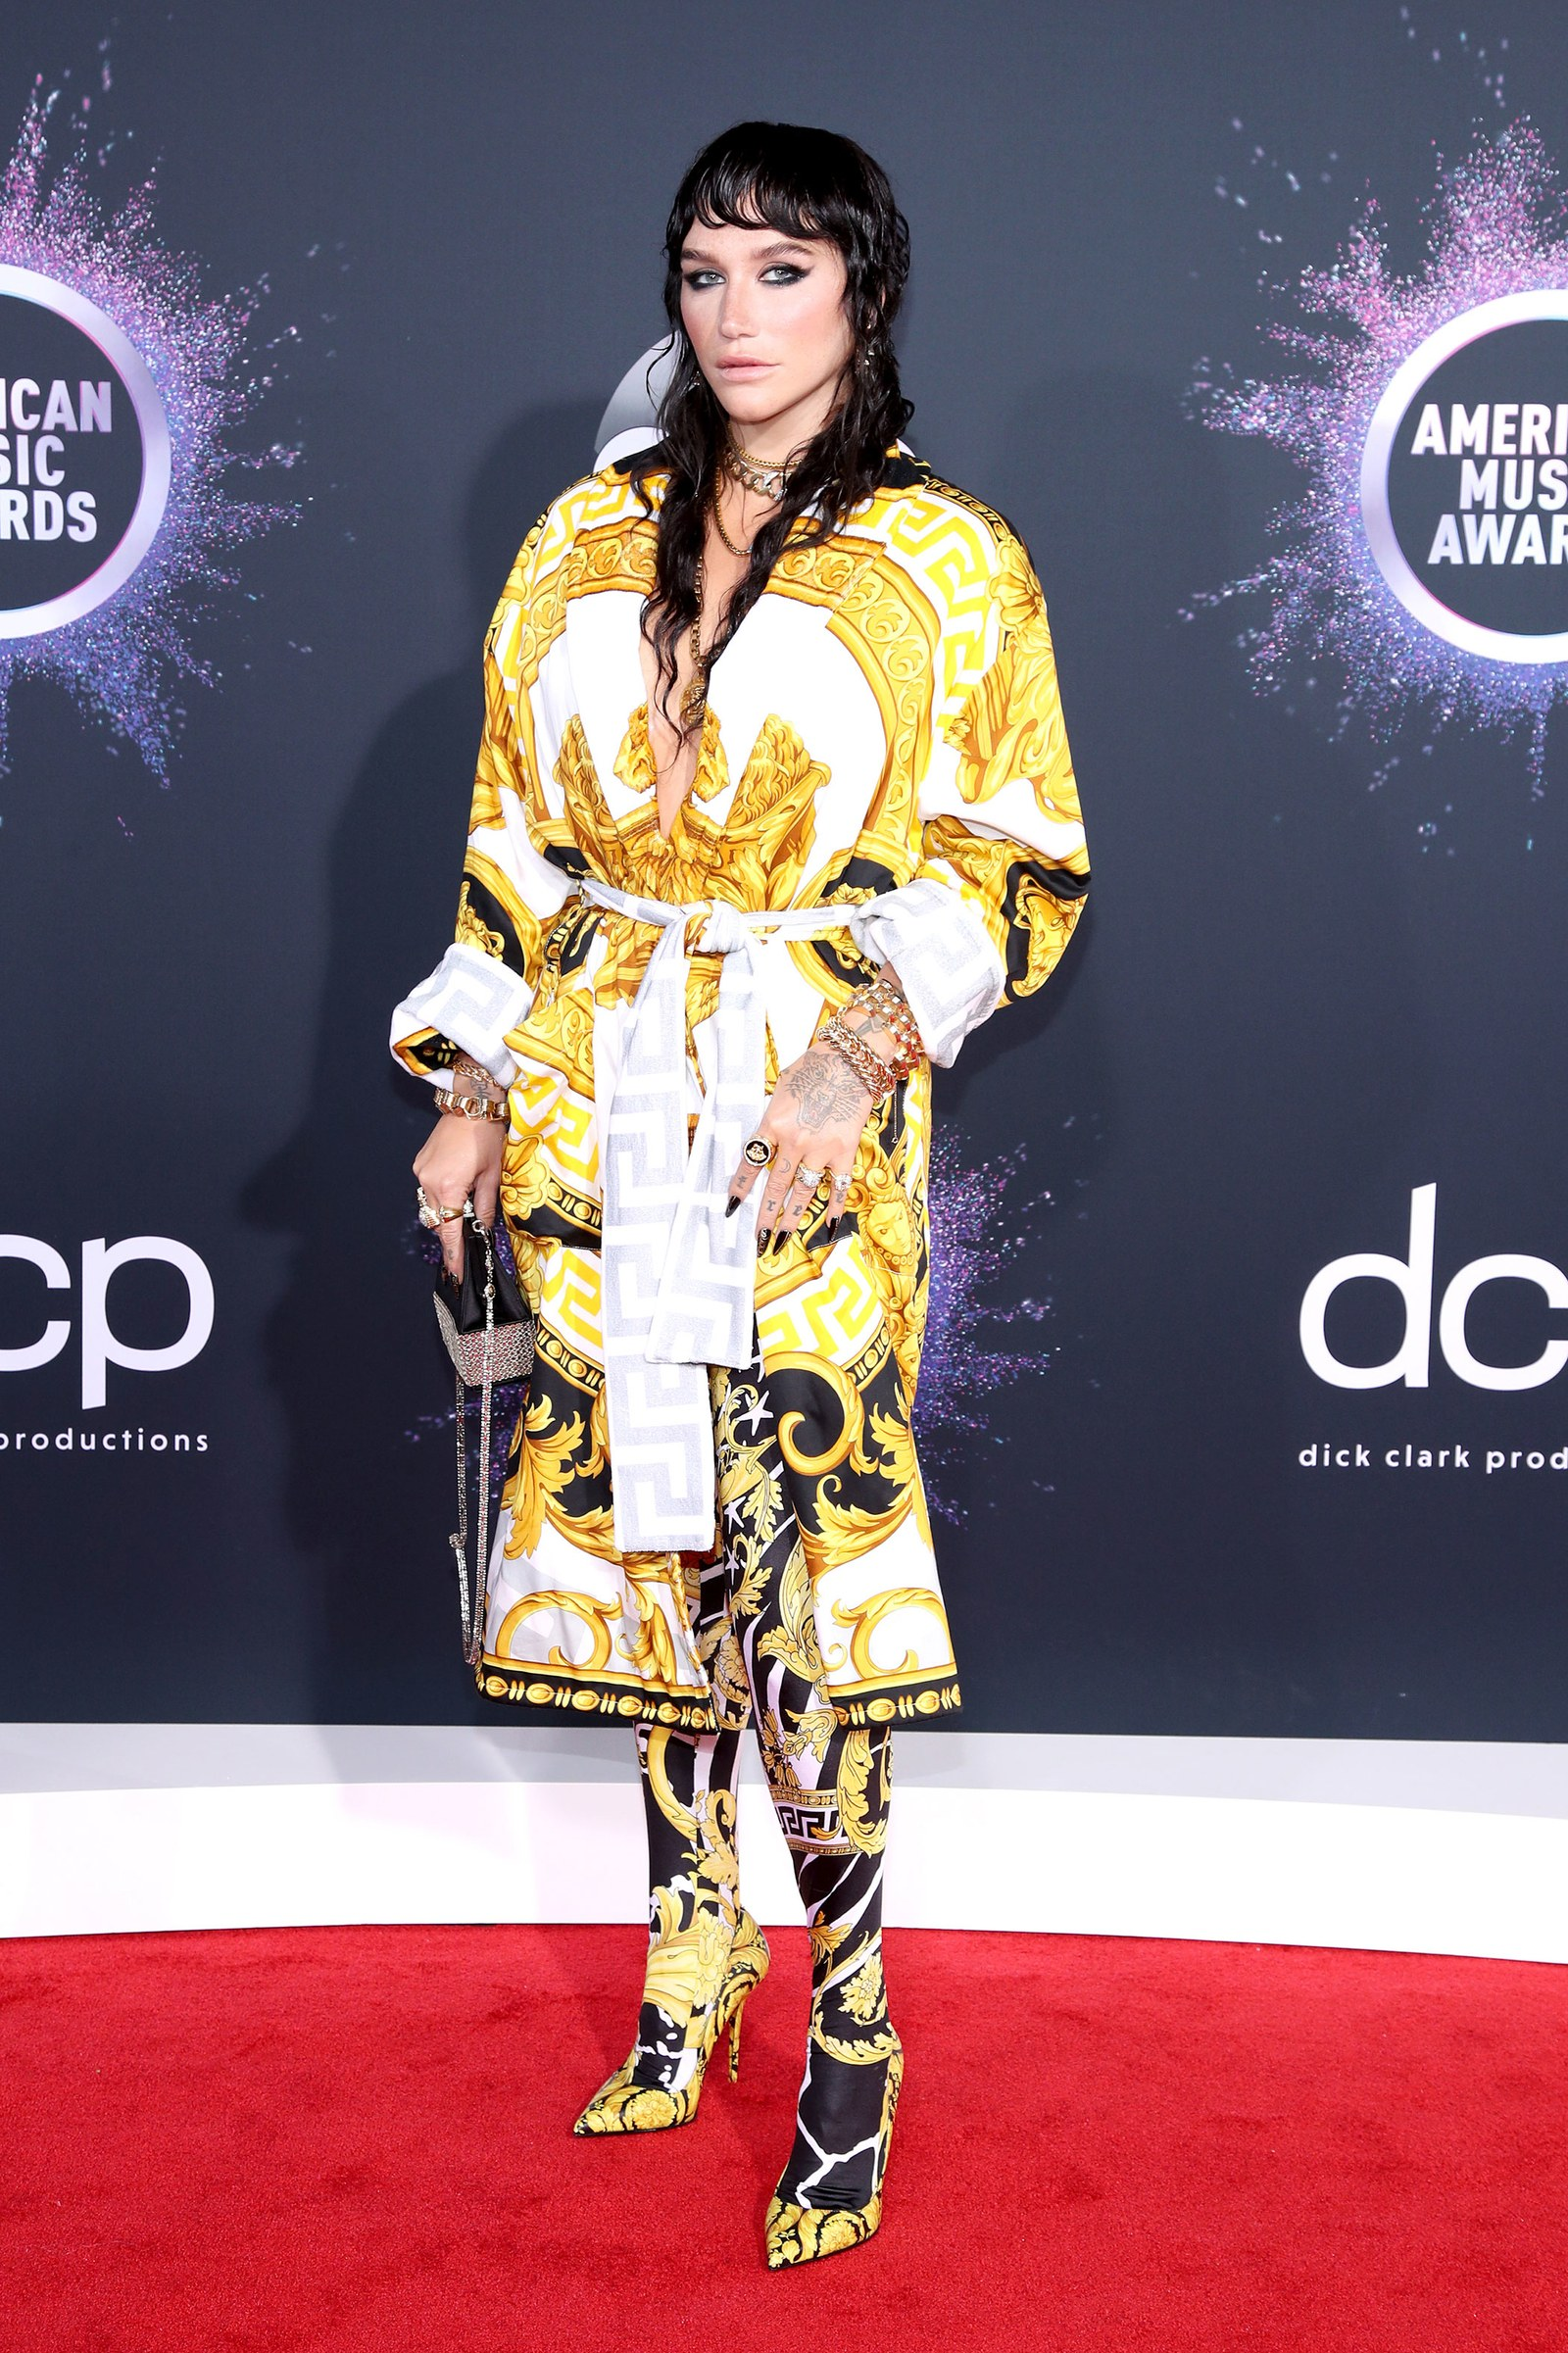 kesha-in-versace-2019-american-music-awards